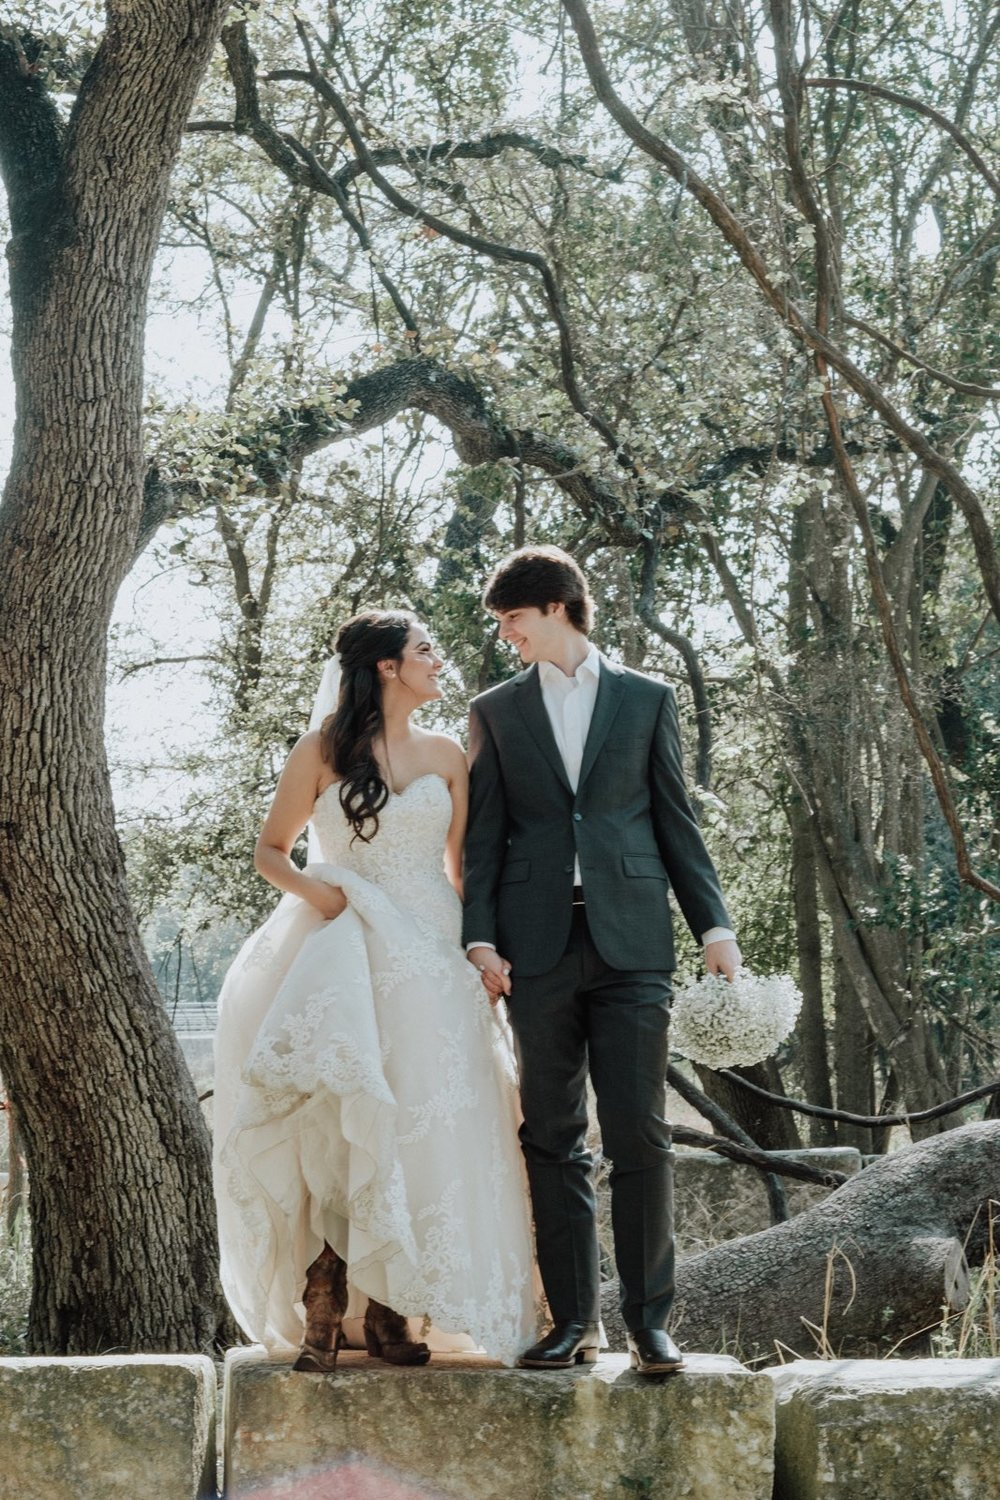 Savannah Richardson and Dylan Clark were married on March 18, 2018 at Magnolia Halle in San Antonio, Texas.